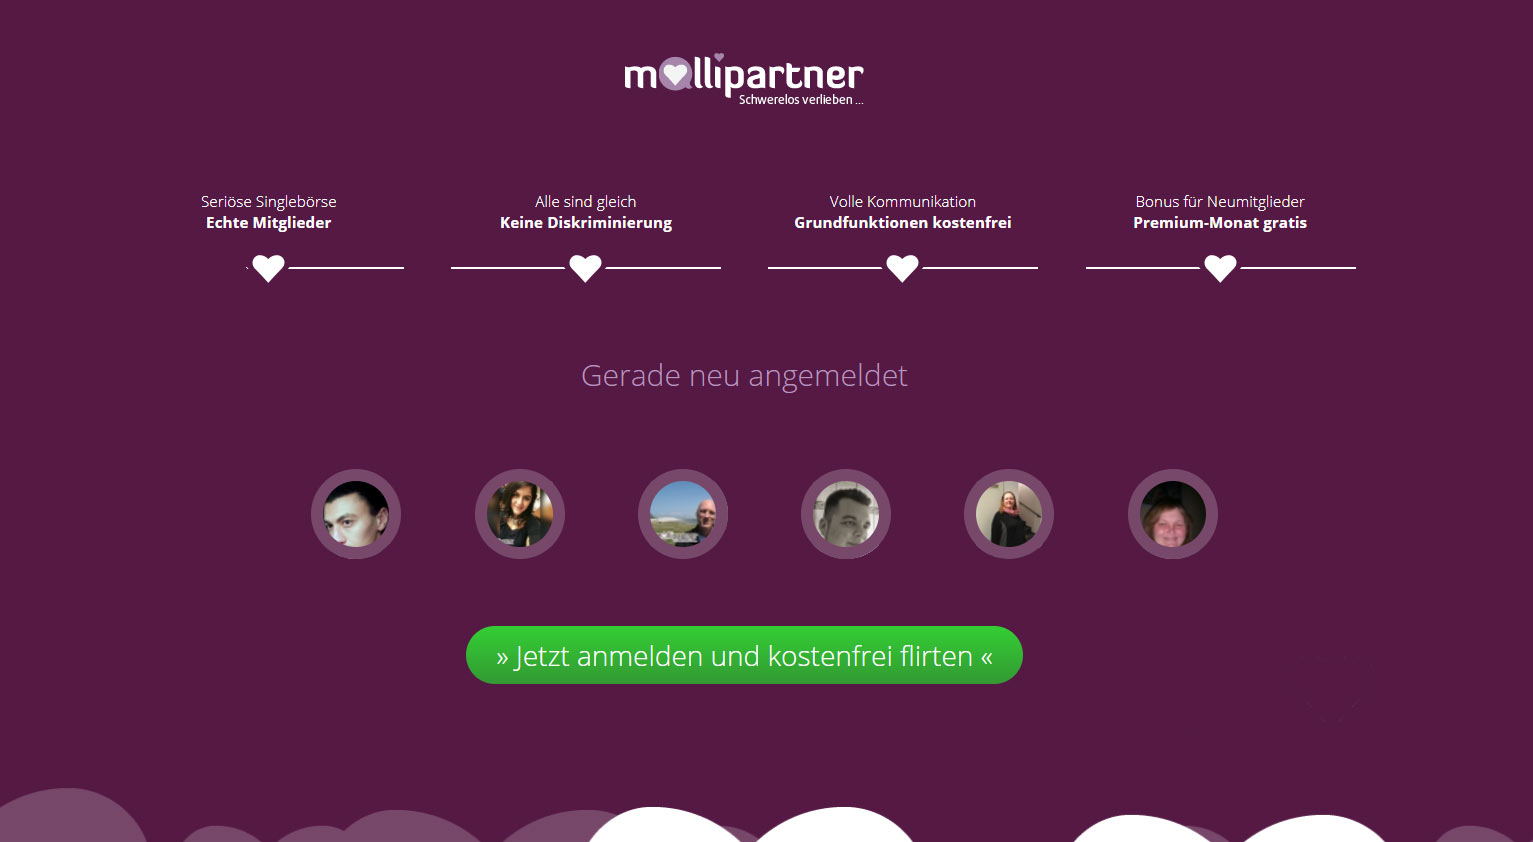 Mollipartner.de